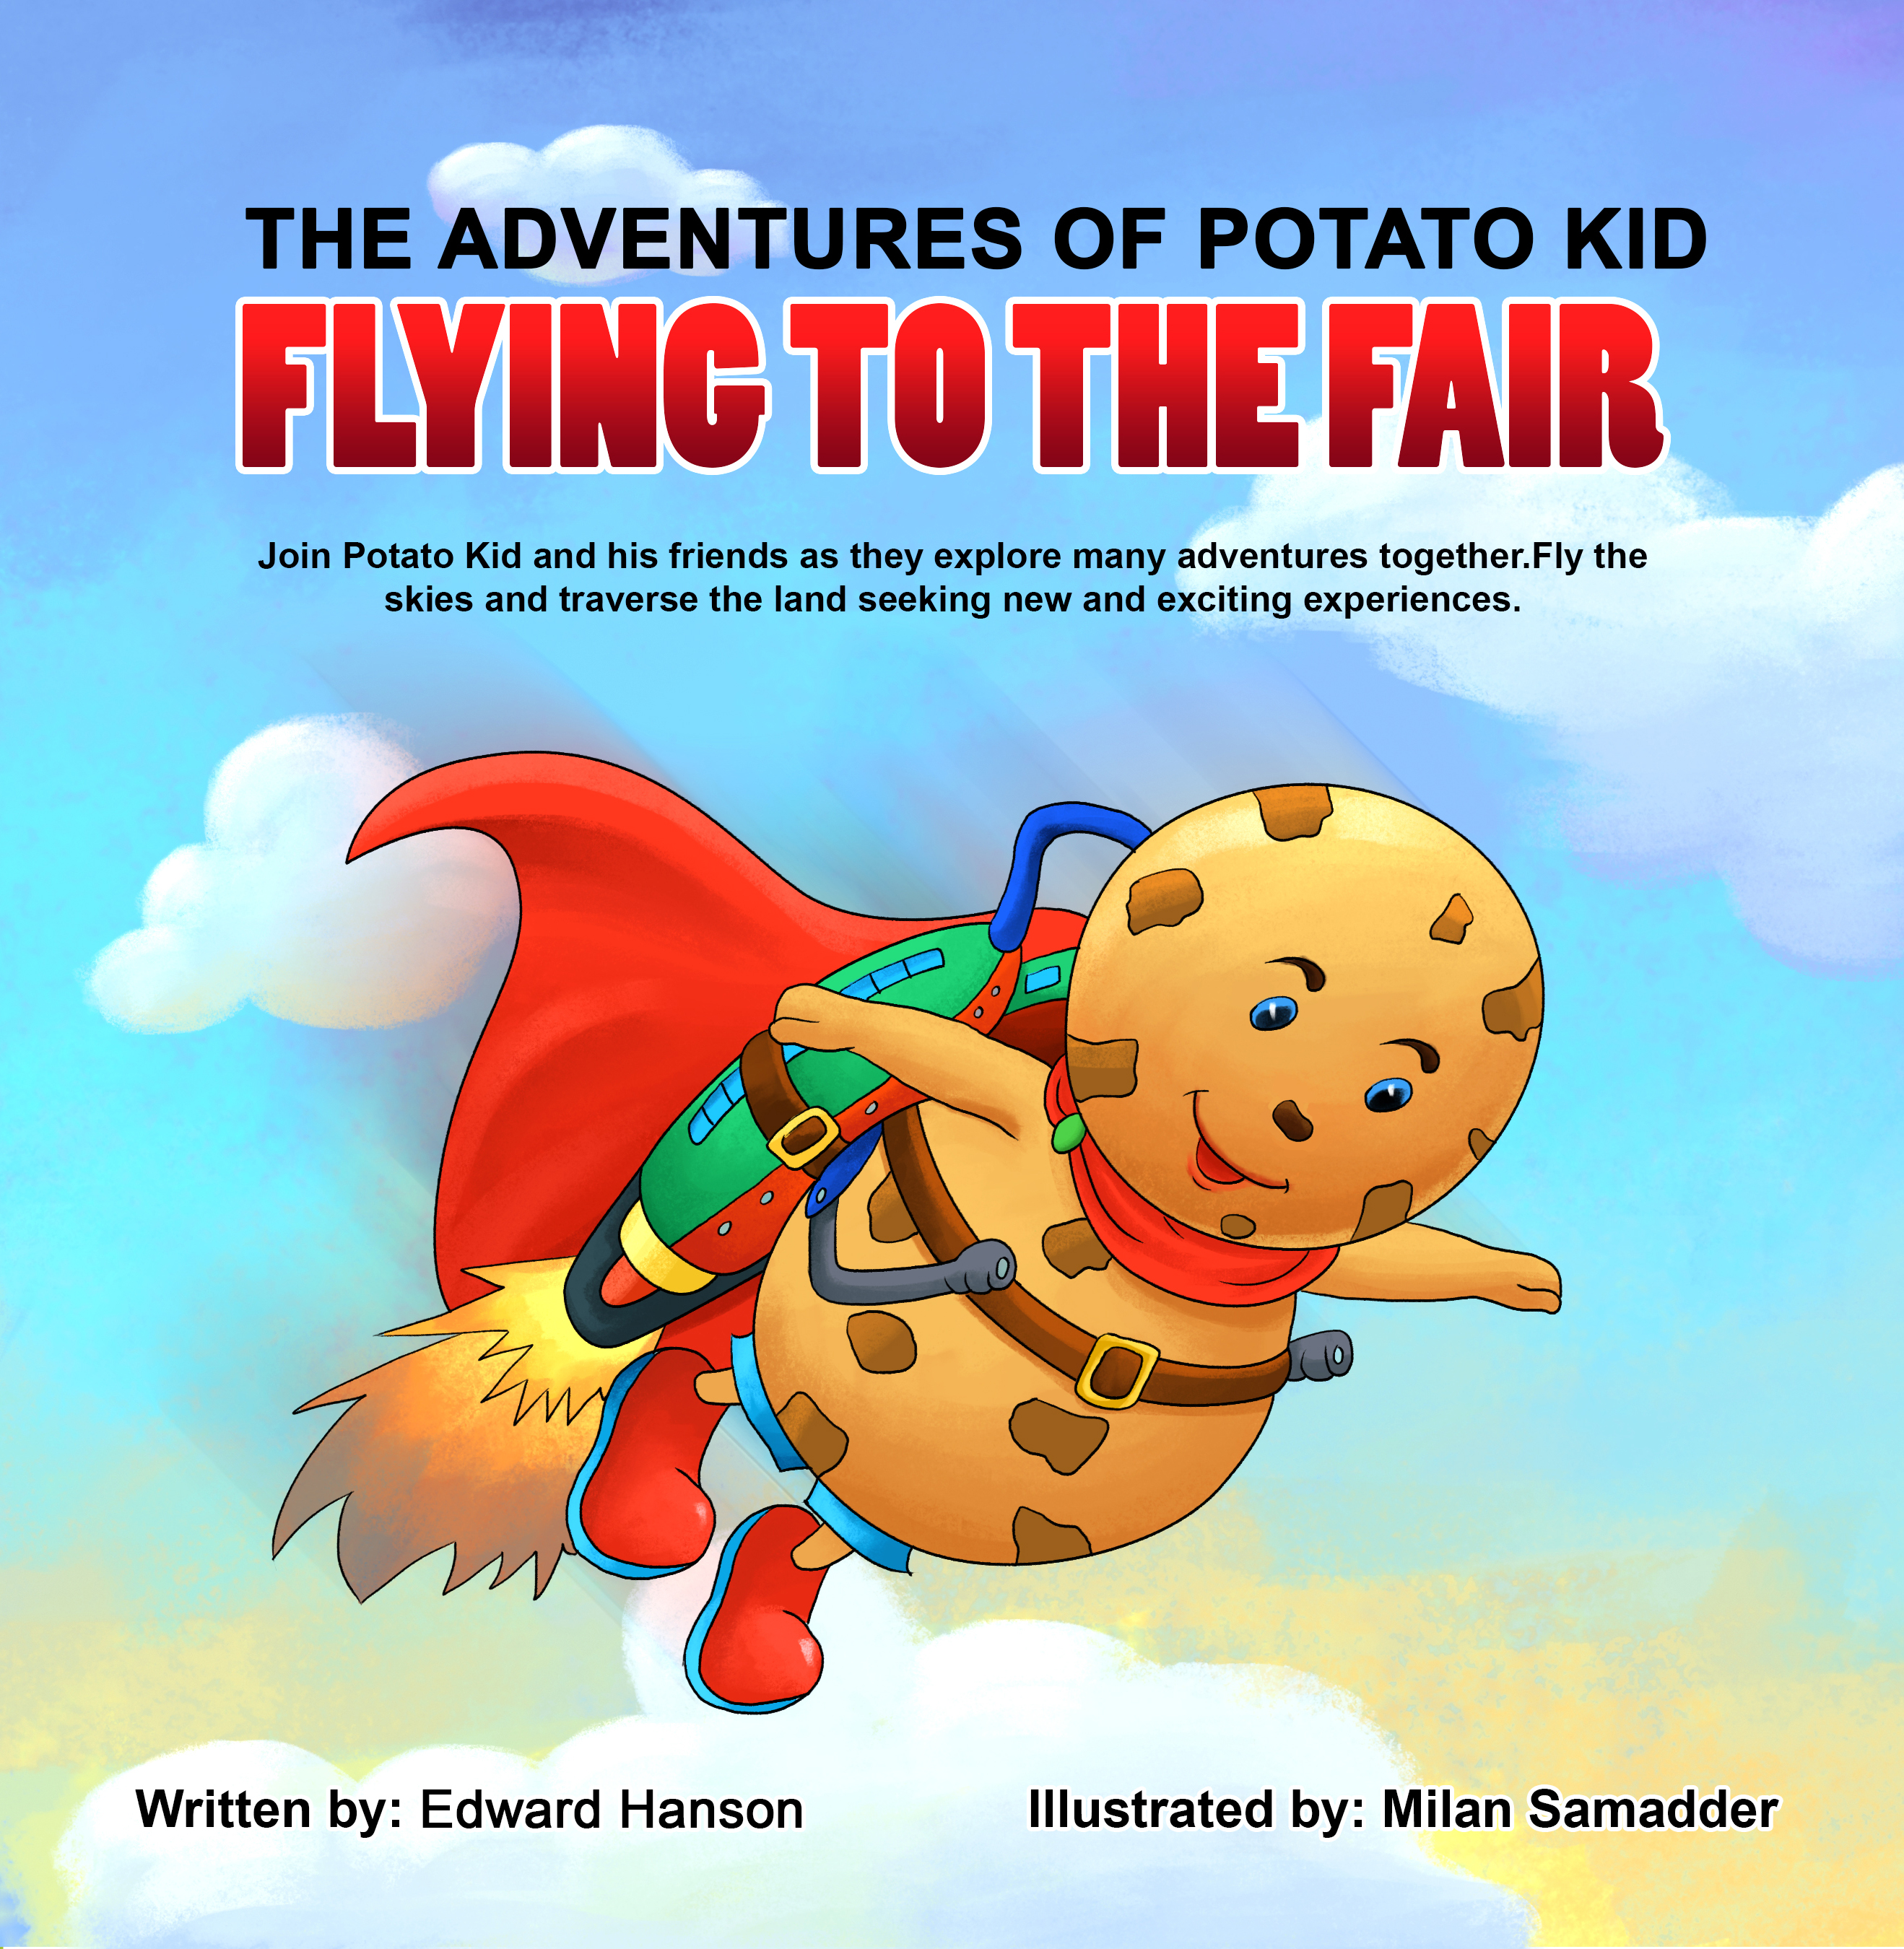 The Adventures of Potato Kid - An Ideal Adventurous Children e-book That Can Stimulate Kid's Adventurous Imaginations